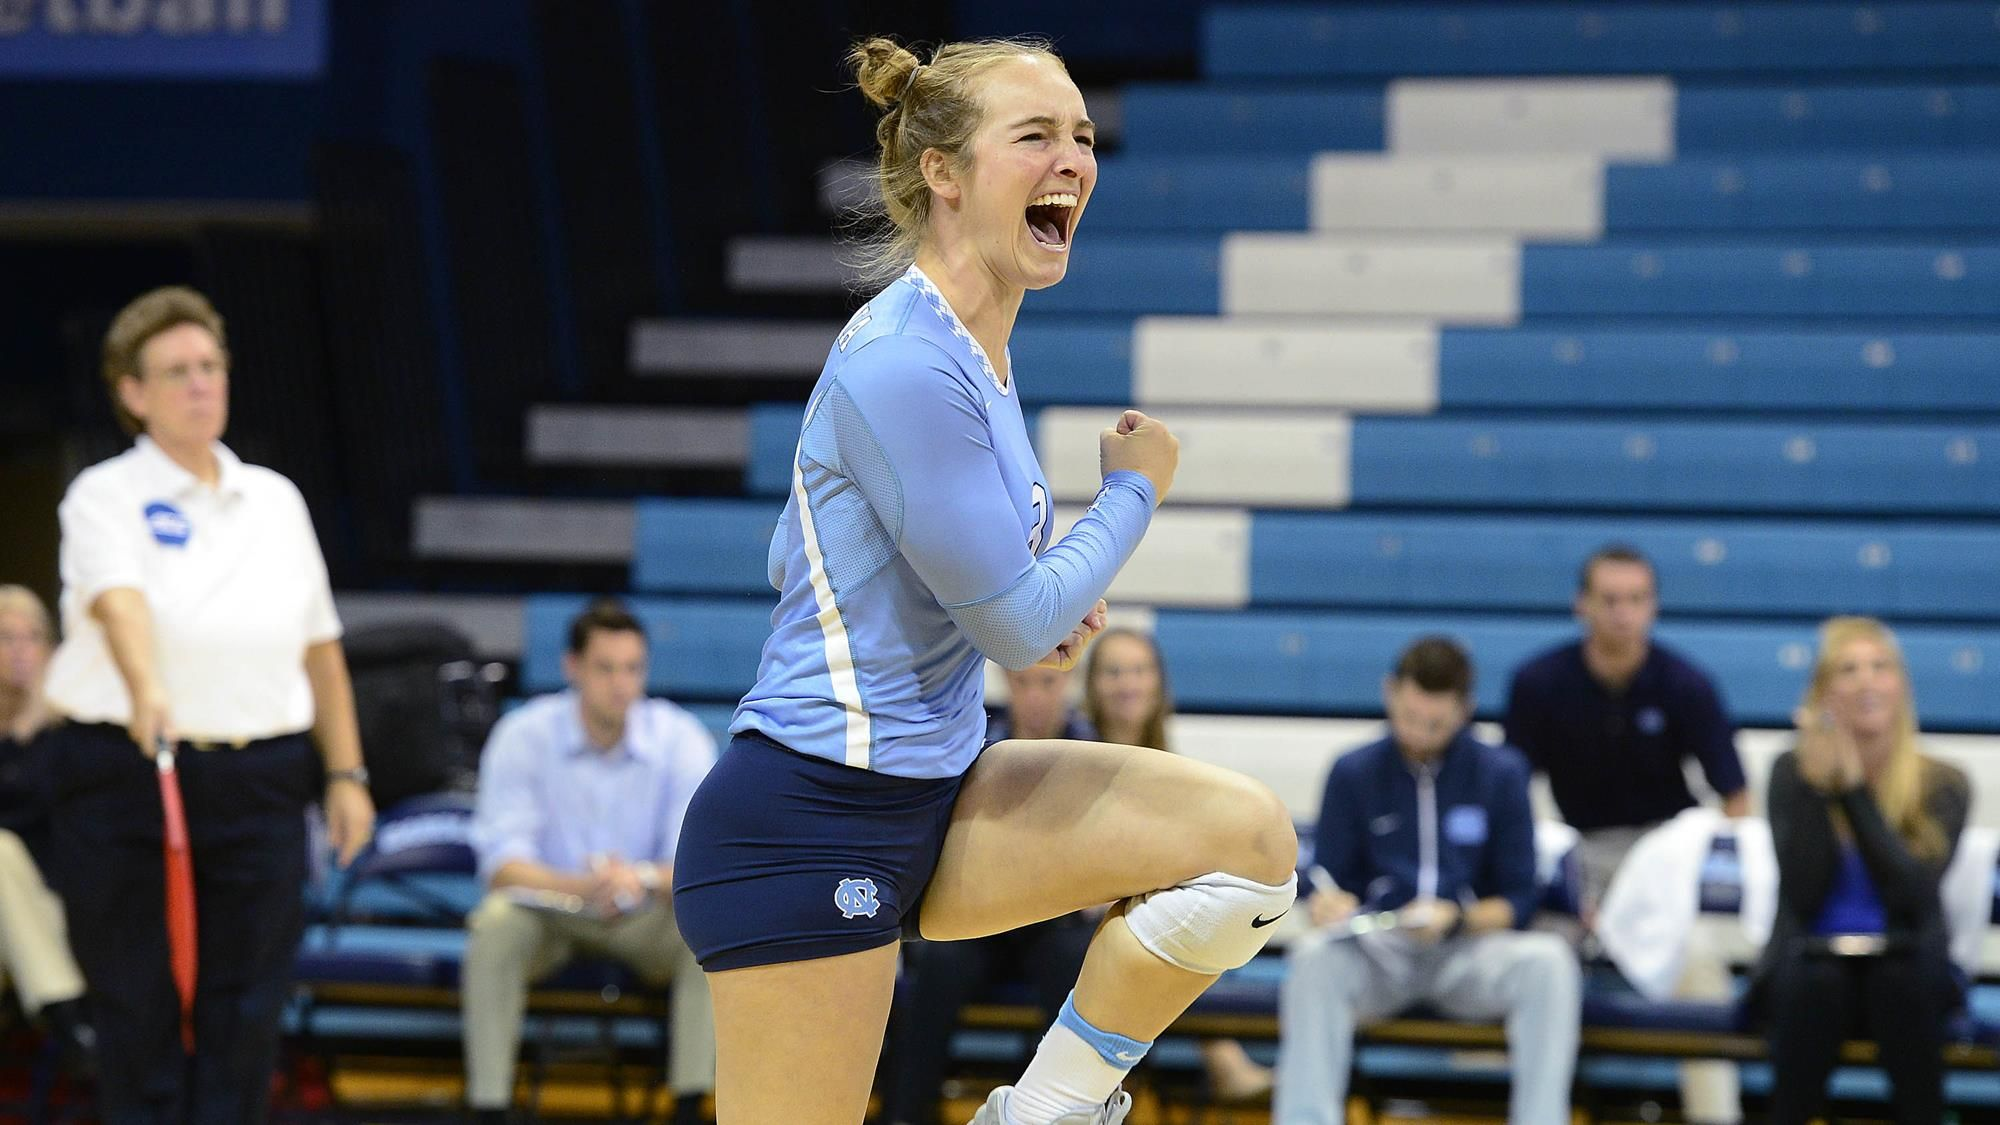 2017 First Look Defensive Specialists University Of North Carolina Athletics Volleyball News Athlete University Of North Carolina